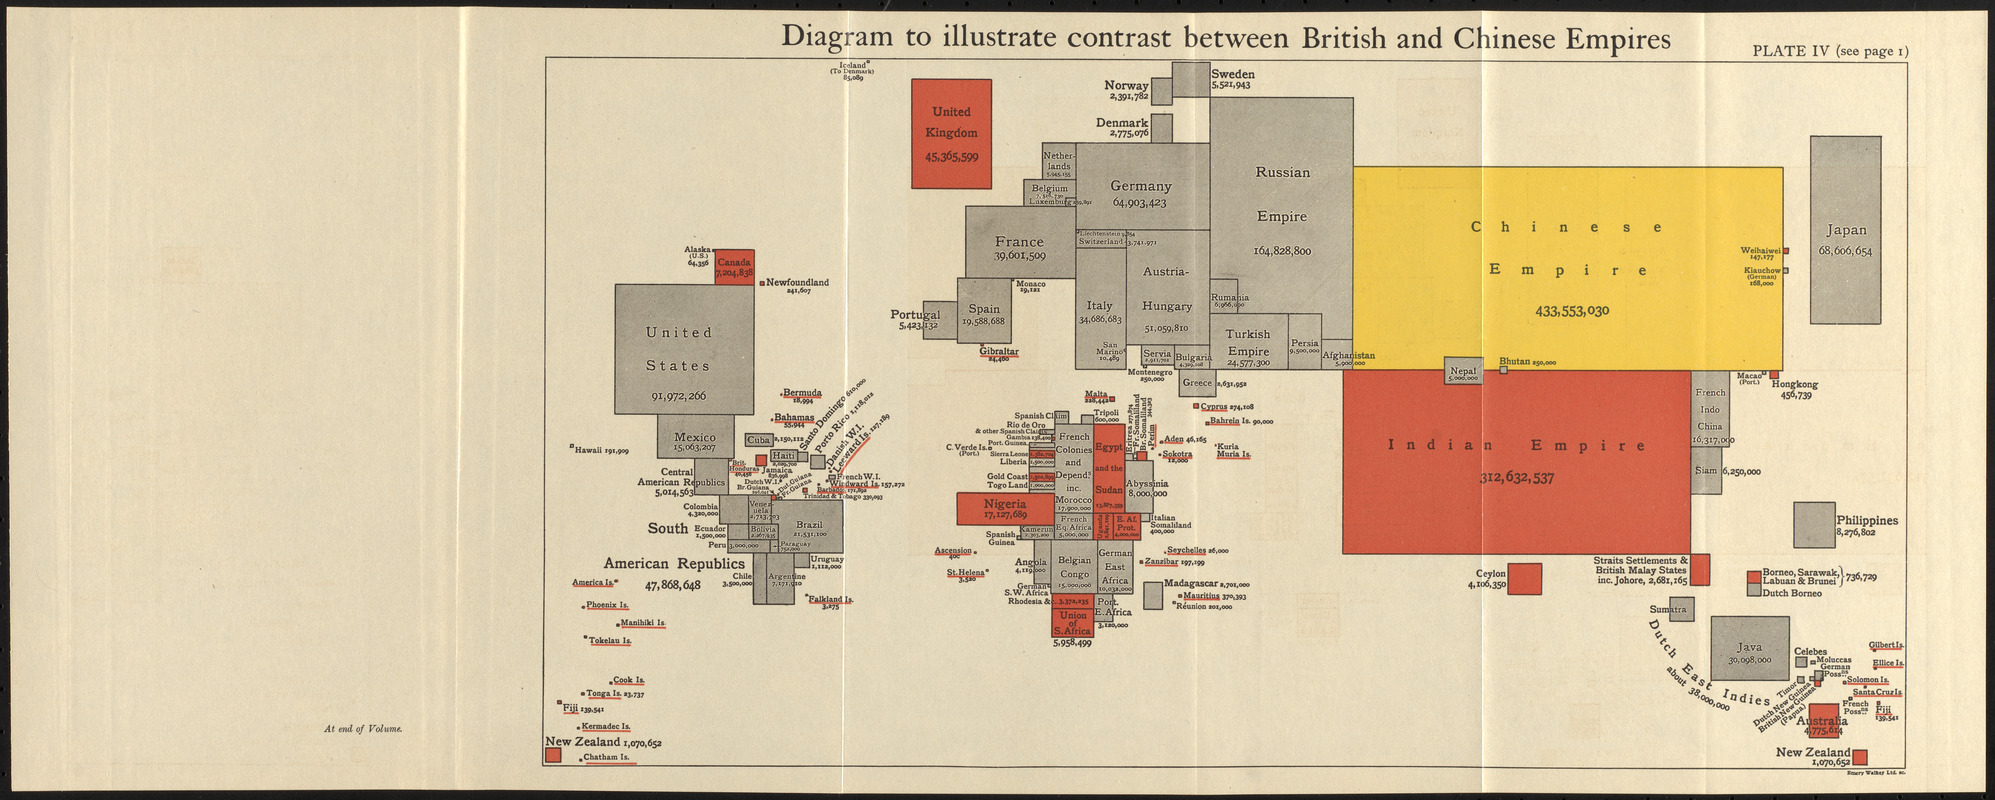 Diagram to illustrate contrast between British and Chinese Empires